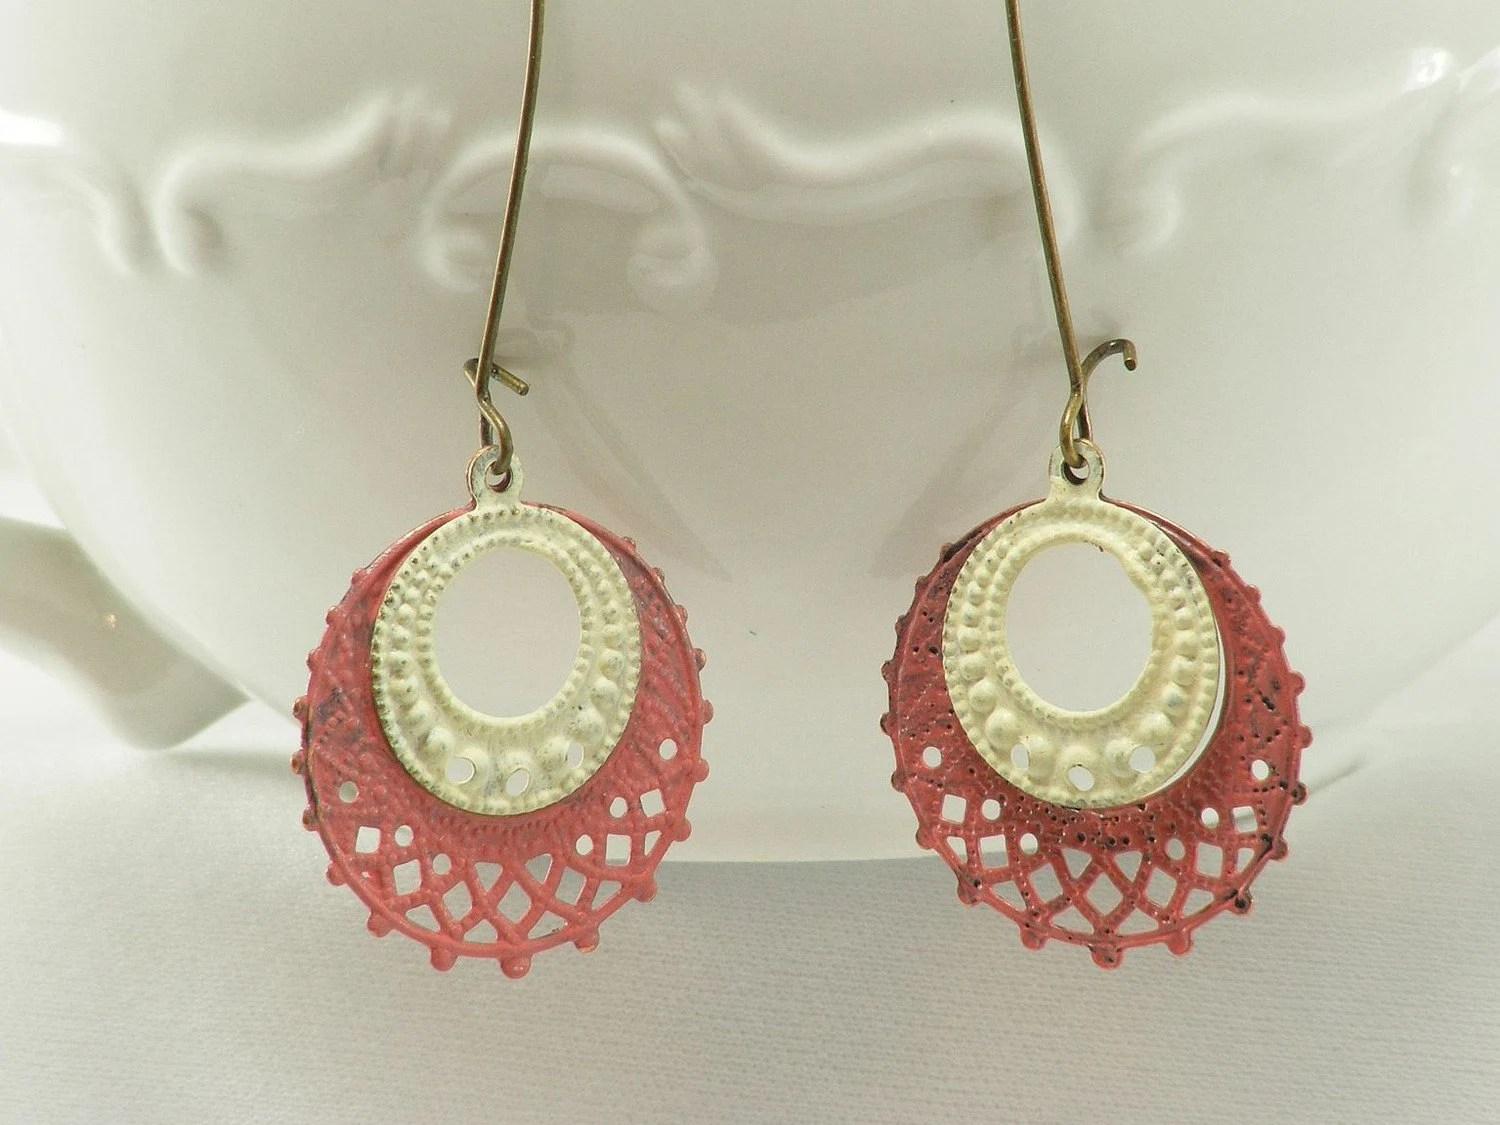 White & Coral Earrings by Gleeful Peacock